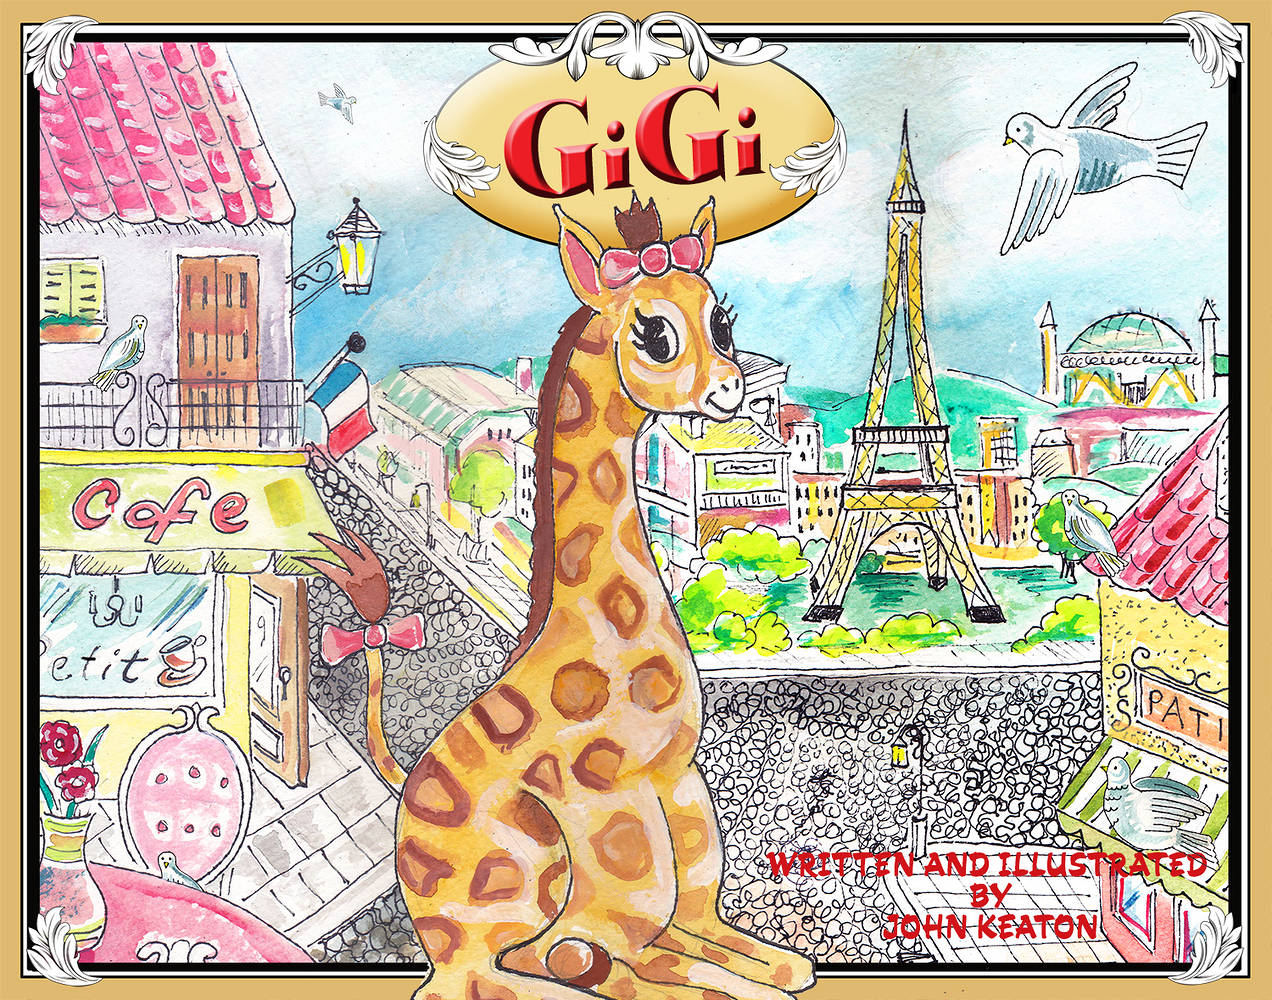 GiGi Book Cover by John Keaton